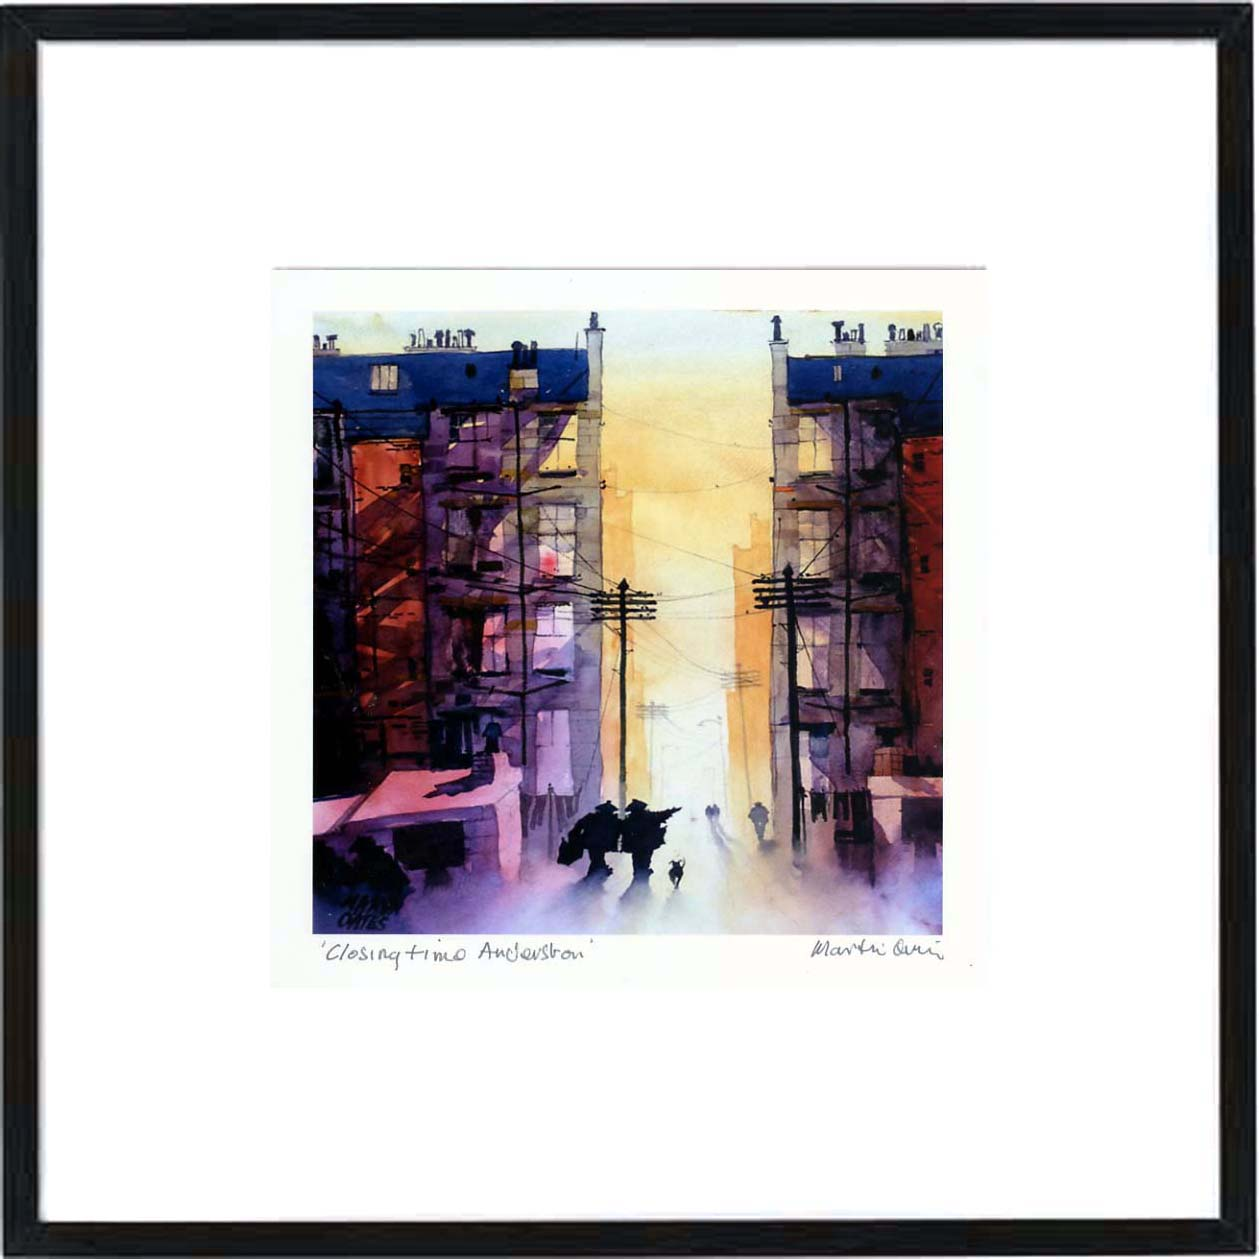 Closing Time Anderston Framed Print